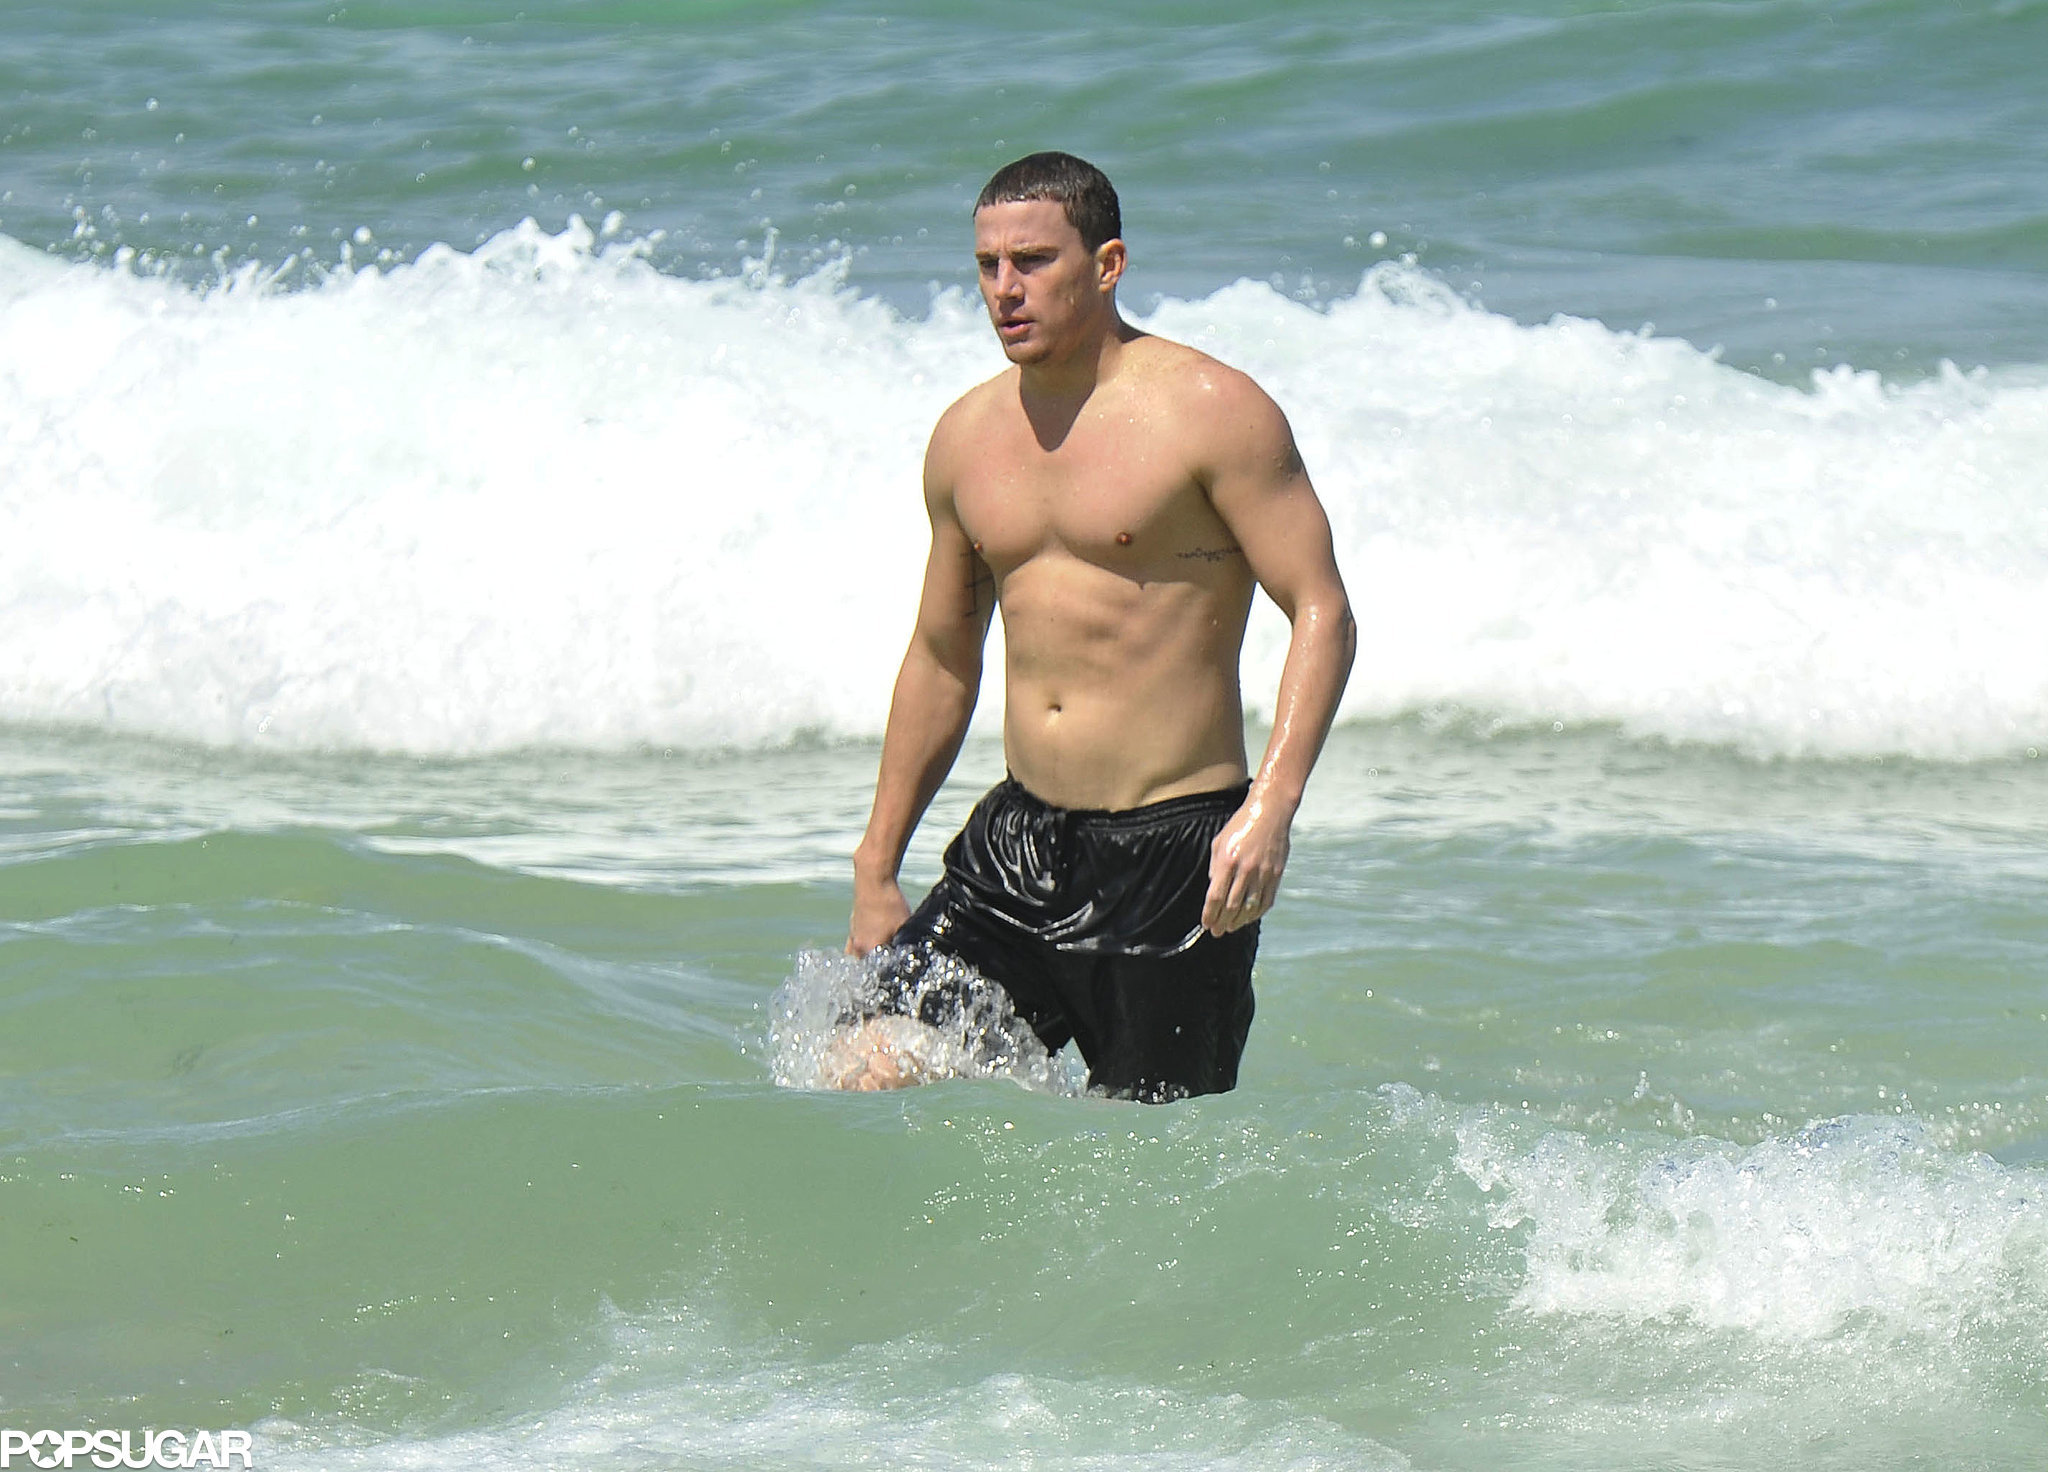 Channing filmed scenes for 21 Jump Street at the beach in Australia in February 2012.